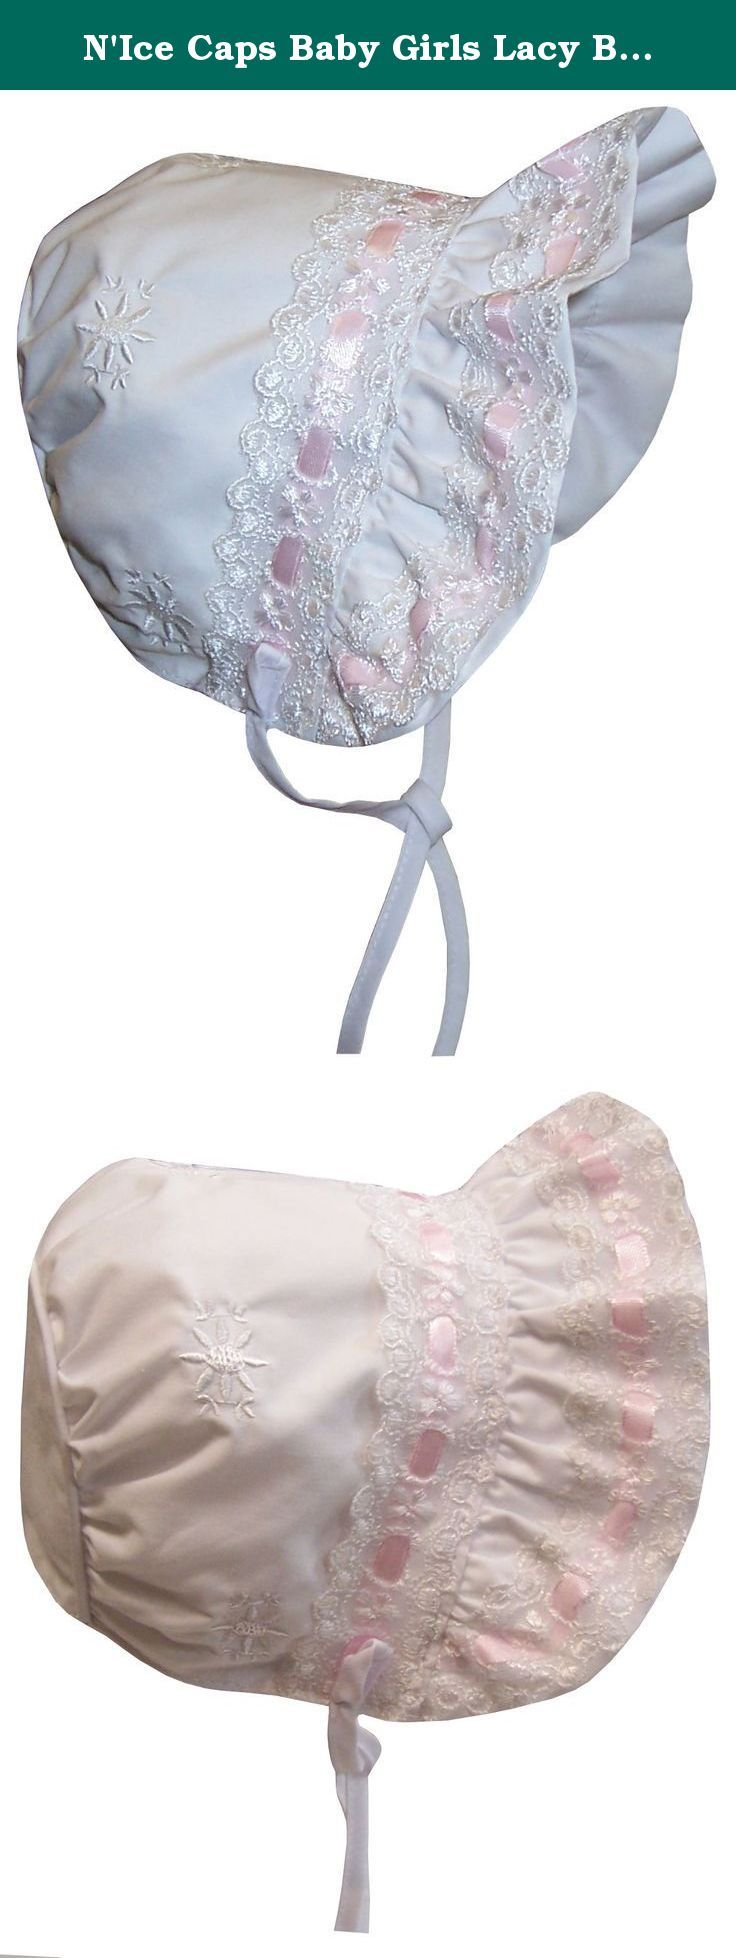 N'Ice Caps Baby Girls Lacy Bonnet With Flowers Embroidery (Infant Small (3-6 months), white/pink). Sun Caps TM baby girls fancy lacy bonnet with ribbon trim and flowers embroideries. Piping in back, full brim, full lining. Poly/cotton soft poplin shell and lining for added comfort, feels cool when in the sun, and wind resistant. Color: white/pink. Available in 5 baby sizes. One size fits Infant X-Small (recommended for 1-2 months.) One size fits Infant Small (recommended for 3-6 months.)…